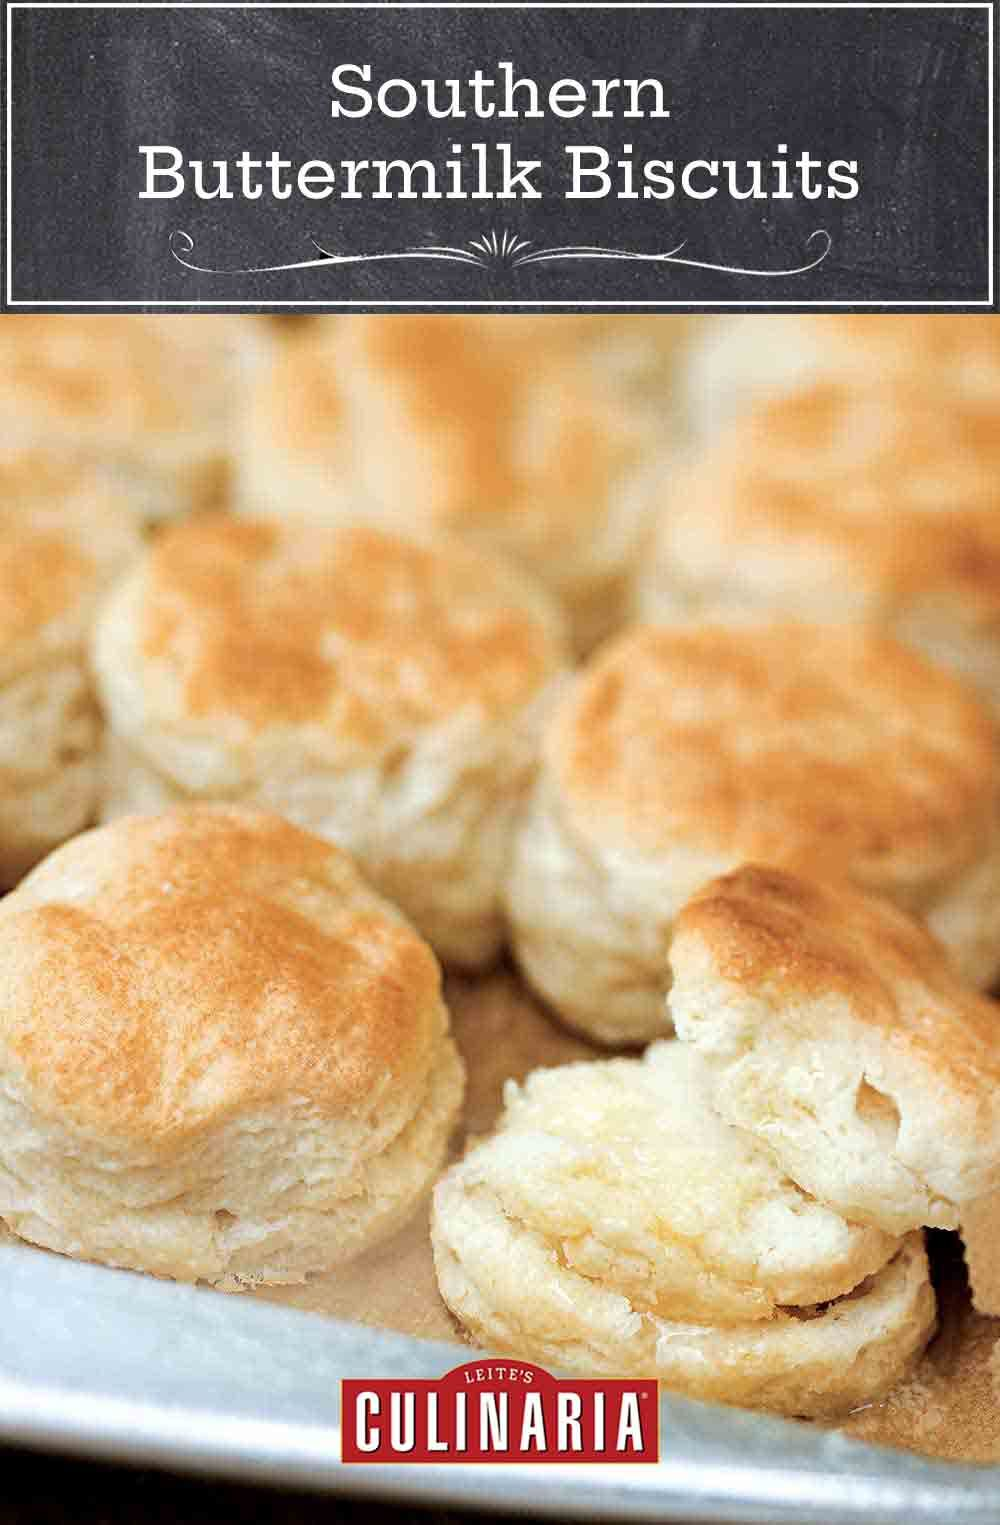 Southern Buttermilk Biscuits Recipe In 2020 Southern Buttermilk Biscuits Buttermilk Biscuits Bread Recipes Sweet